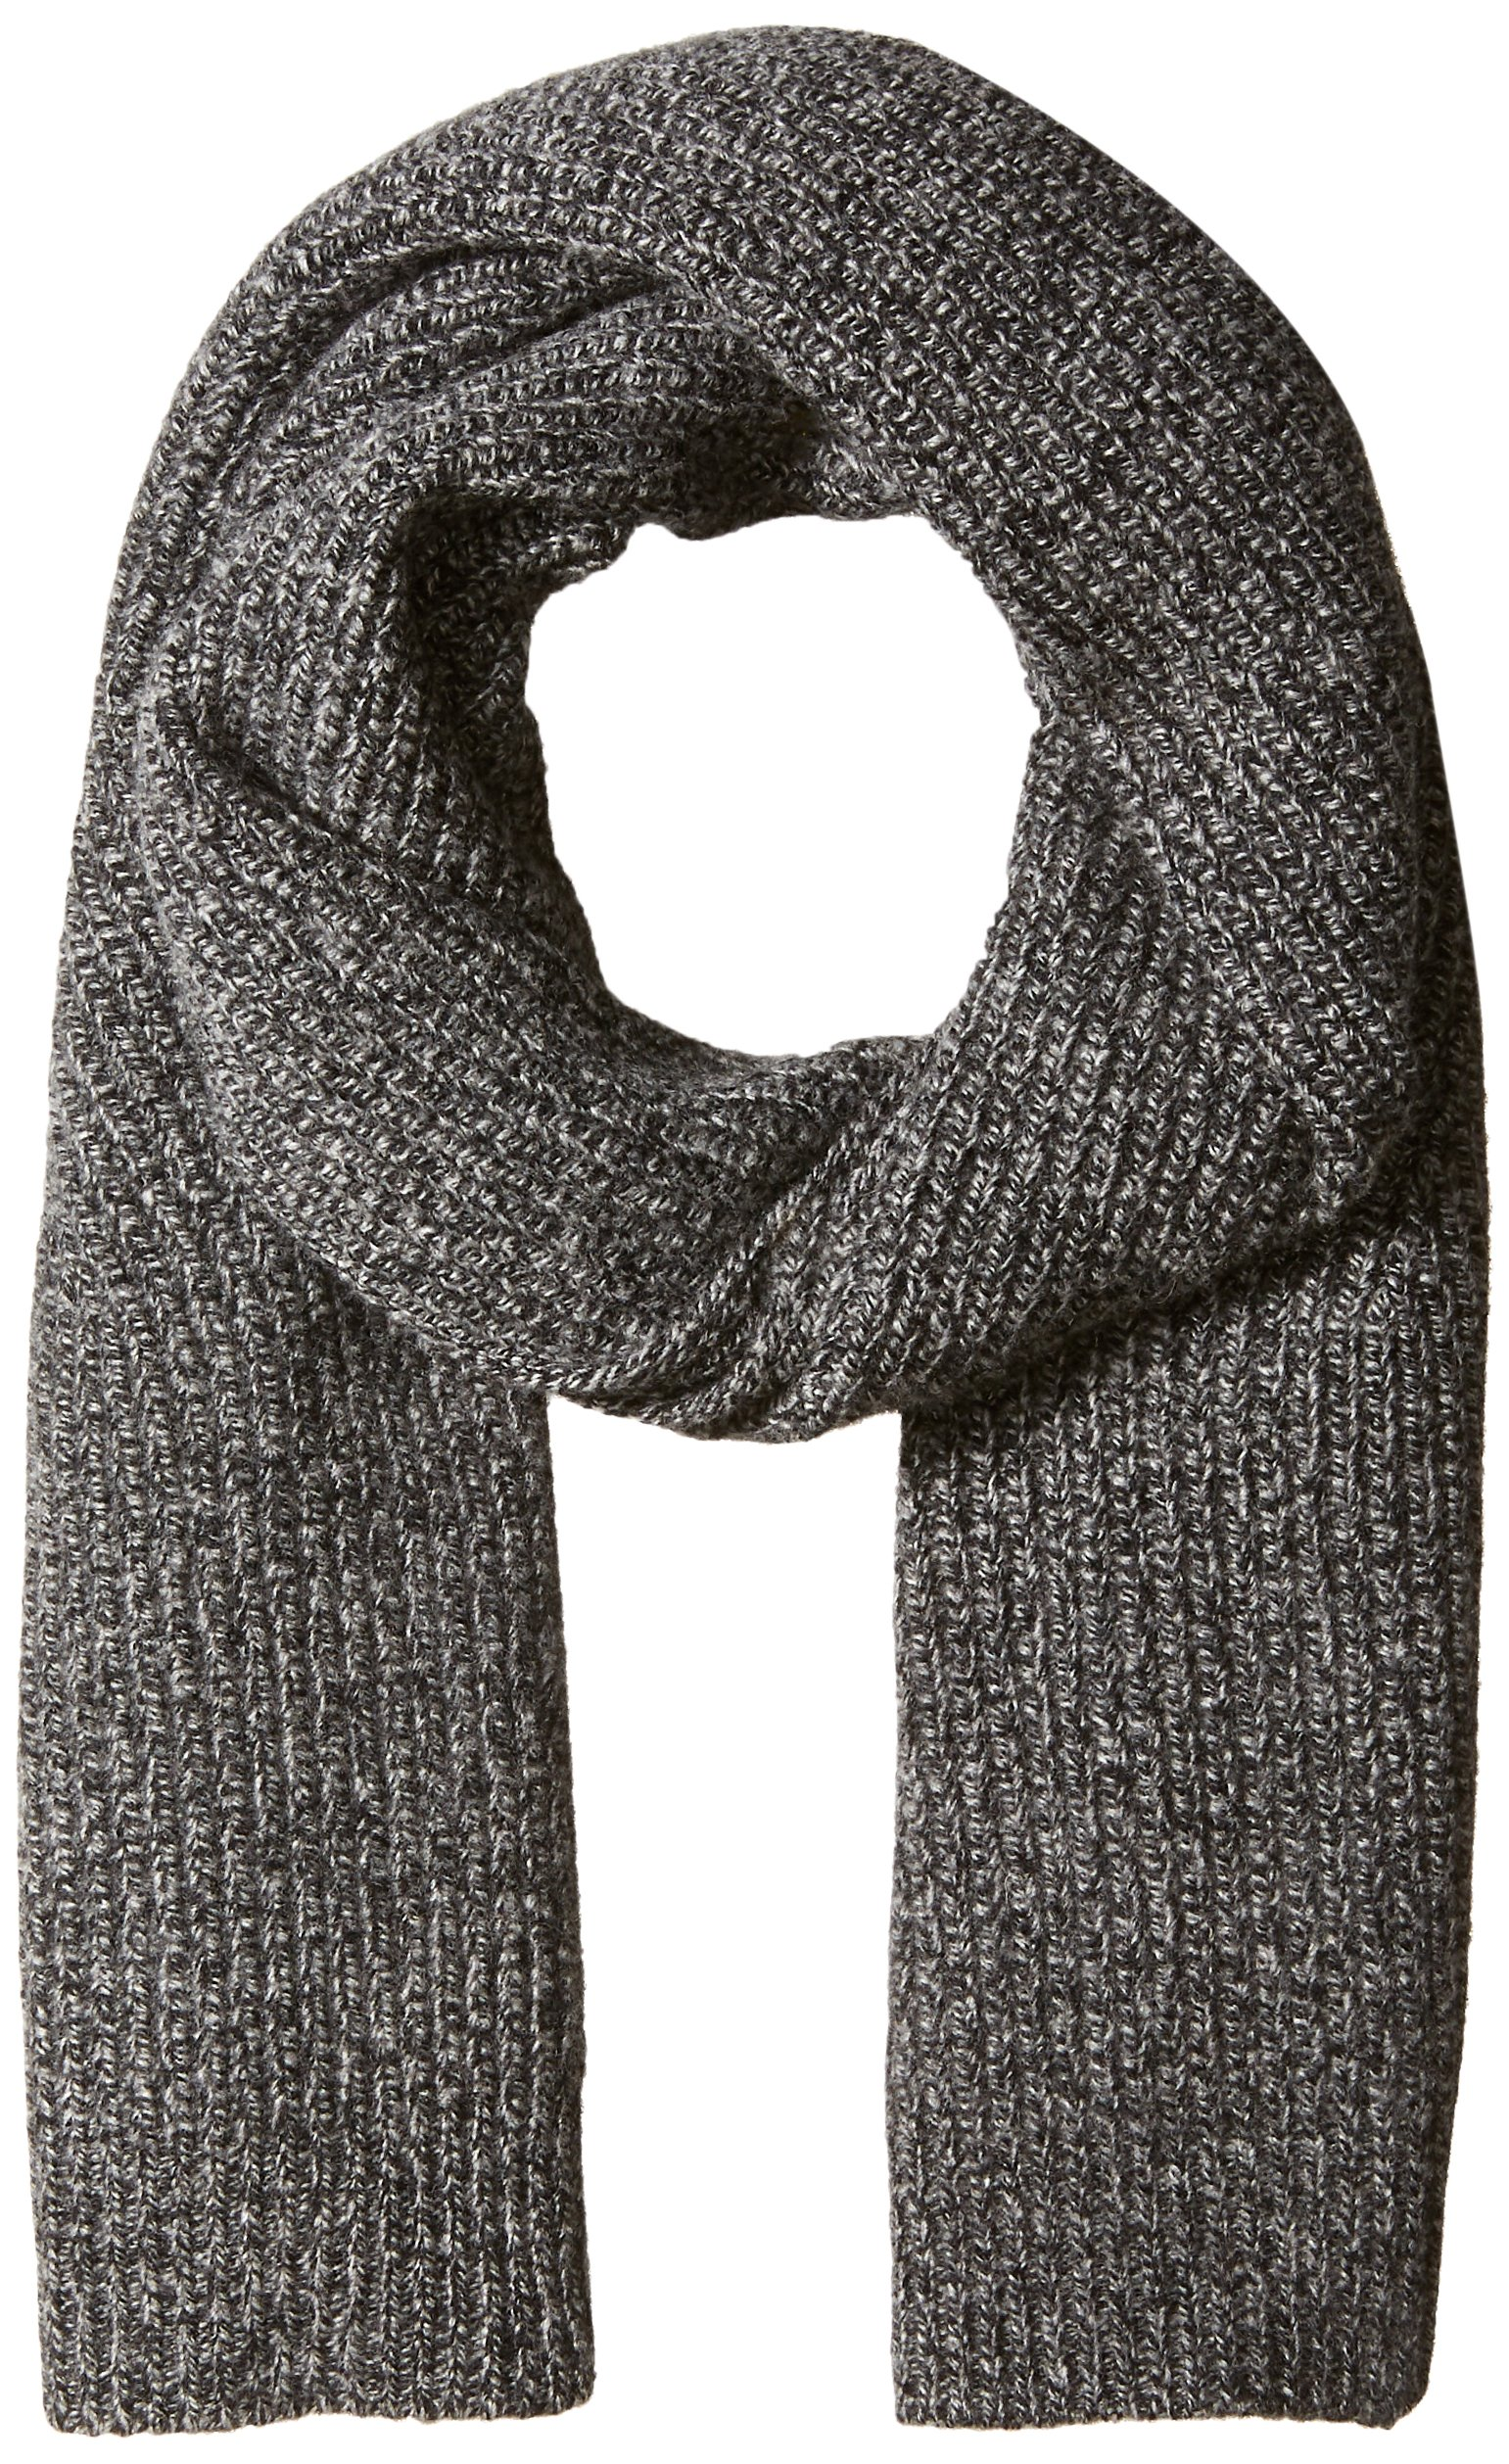 Lacoste Women's Rib Knit Scarf, eclipse blue chine moline, One Size by Lacoste